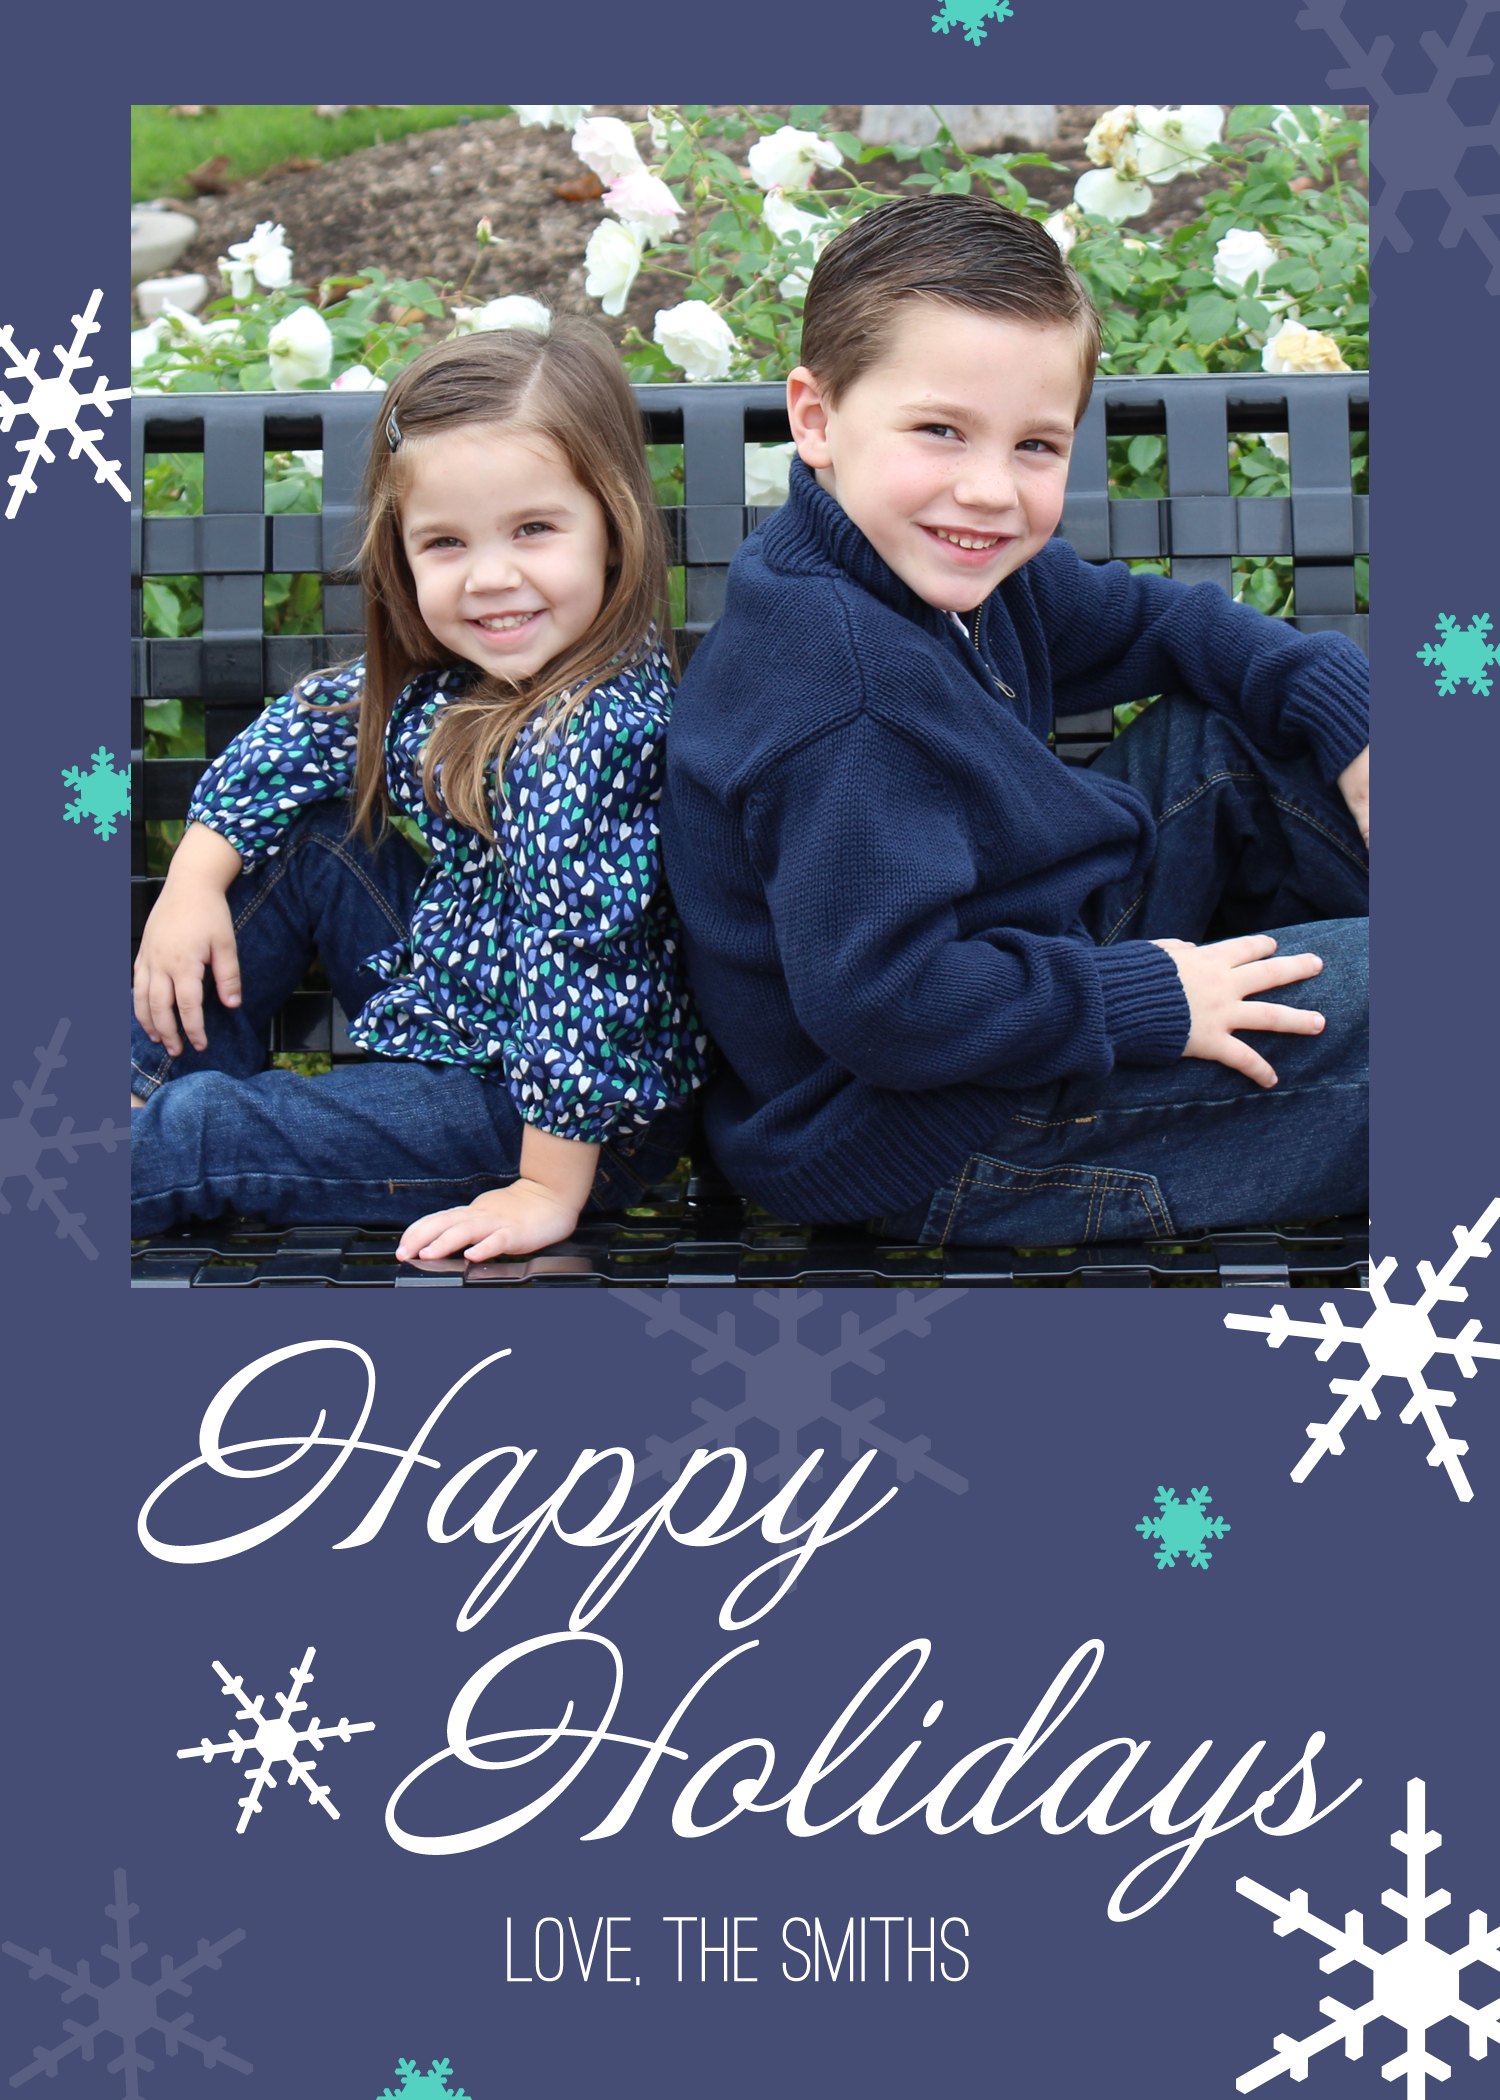 Holiday Photo Card & Pixlr Video Tutorial - Designer Blogs with Free Holiday Photo Card Templates